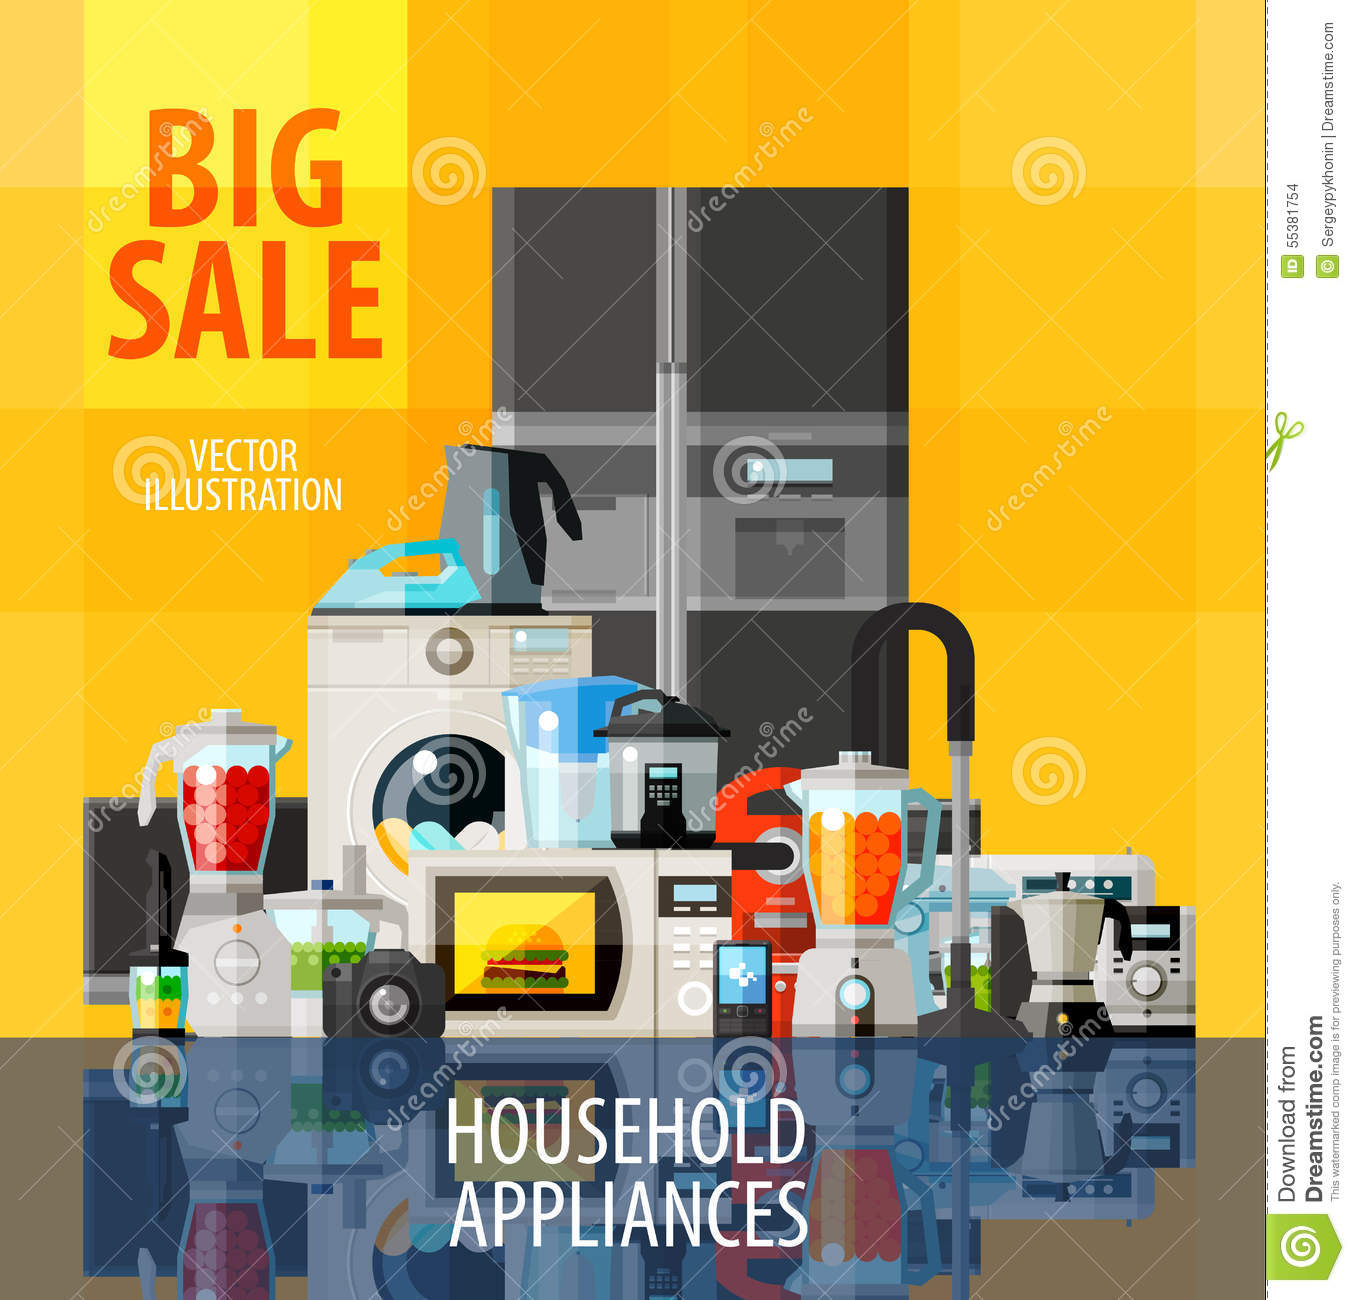 Household appliances vector logo design template stock for Household appliances design